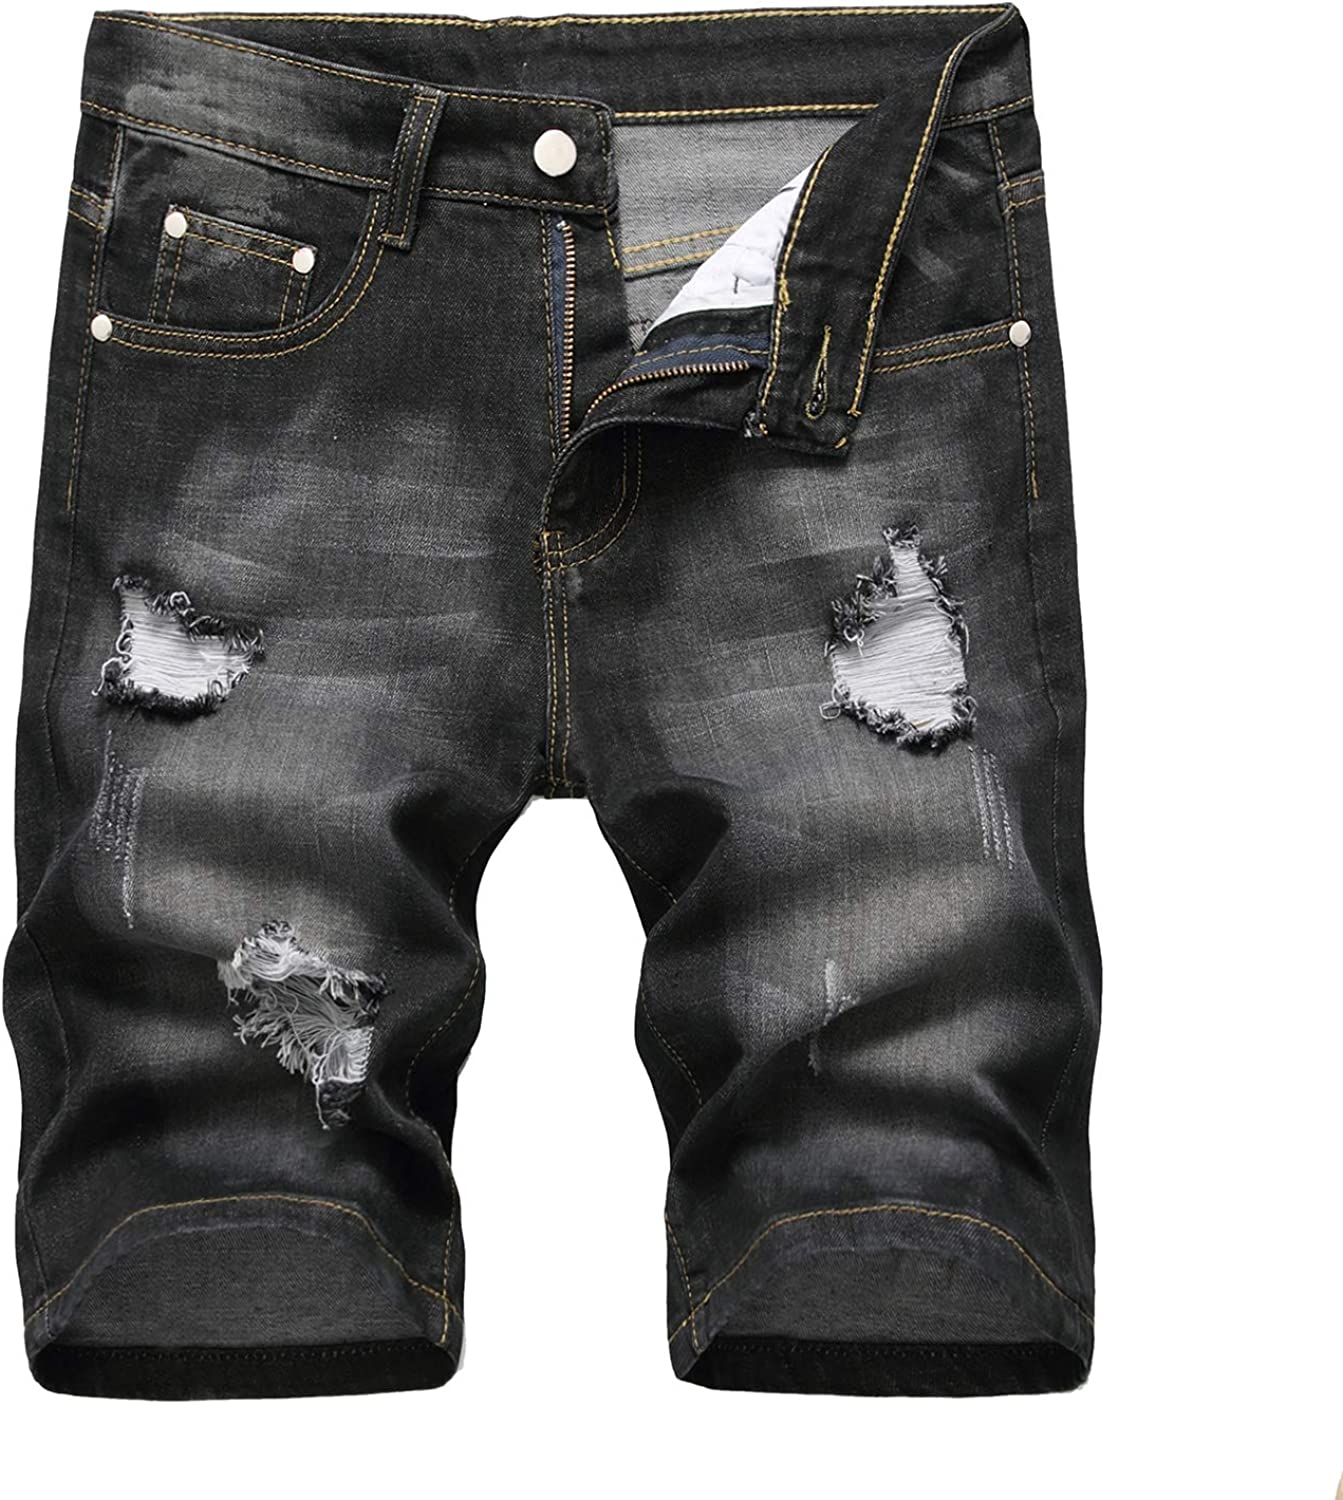 Amoystyle Men's Stretch Ripped Jean Shorts